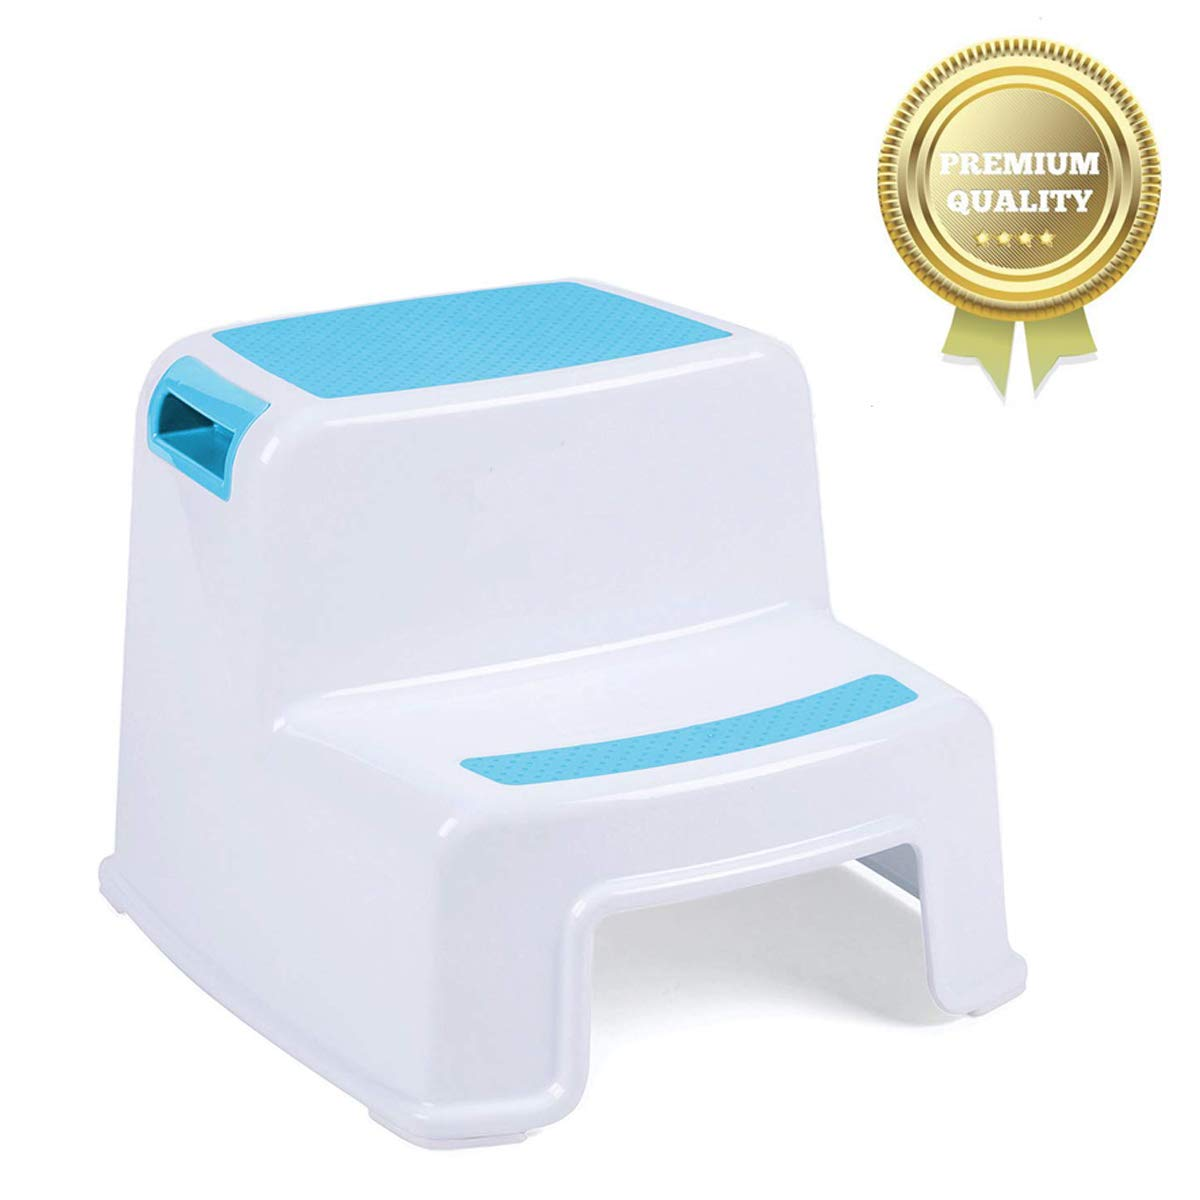 Versatile Two-Step Design for Growing Children Dual Height Step Stool for Kids Green Toddlers Stool for Potty Training and Use in The Bathroom or Kitchen